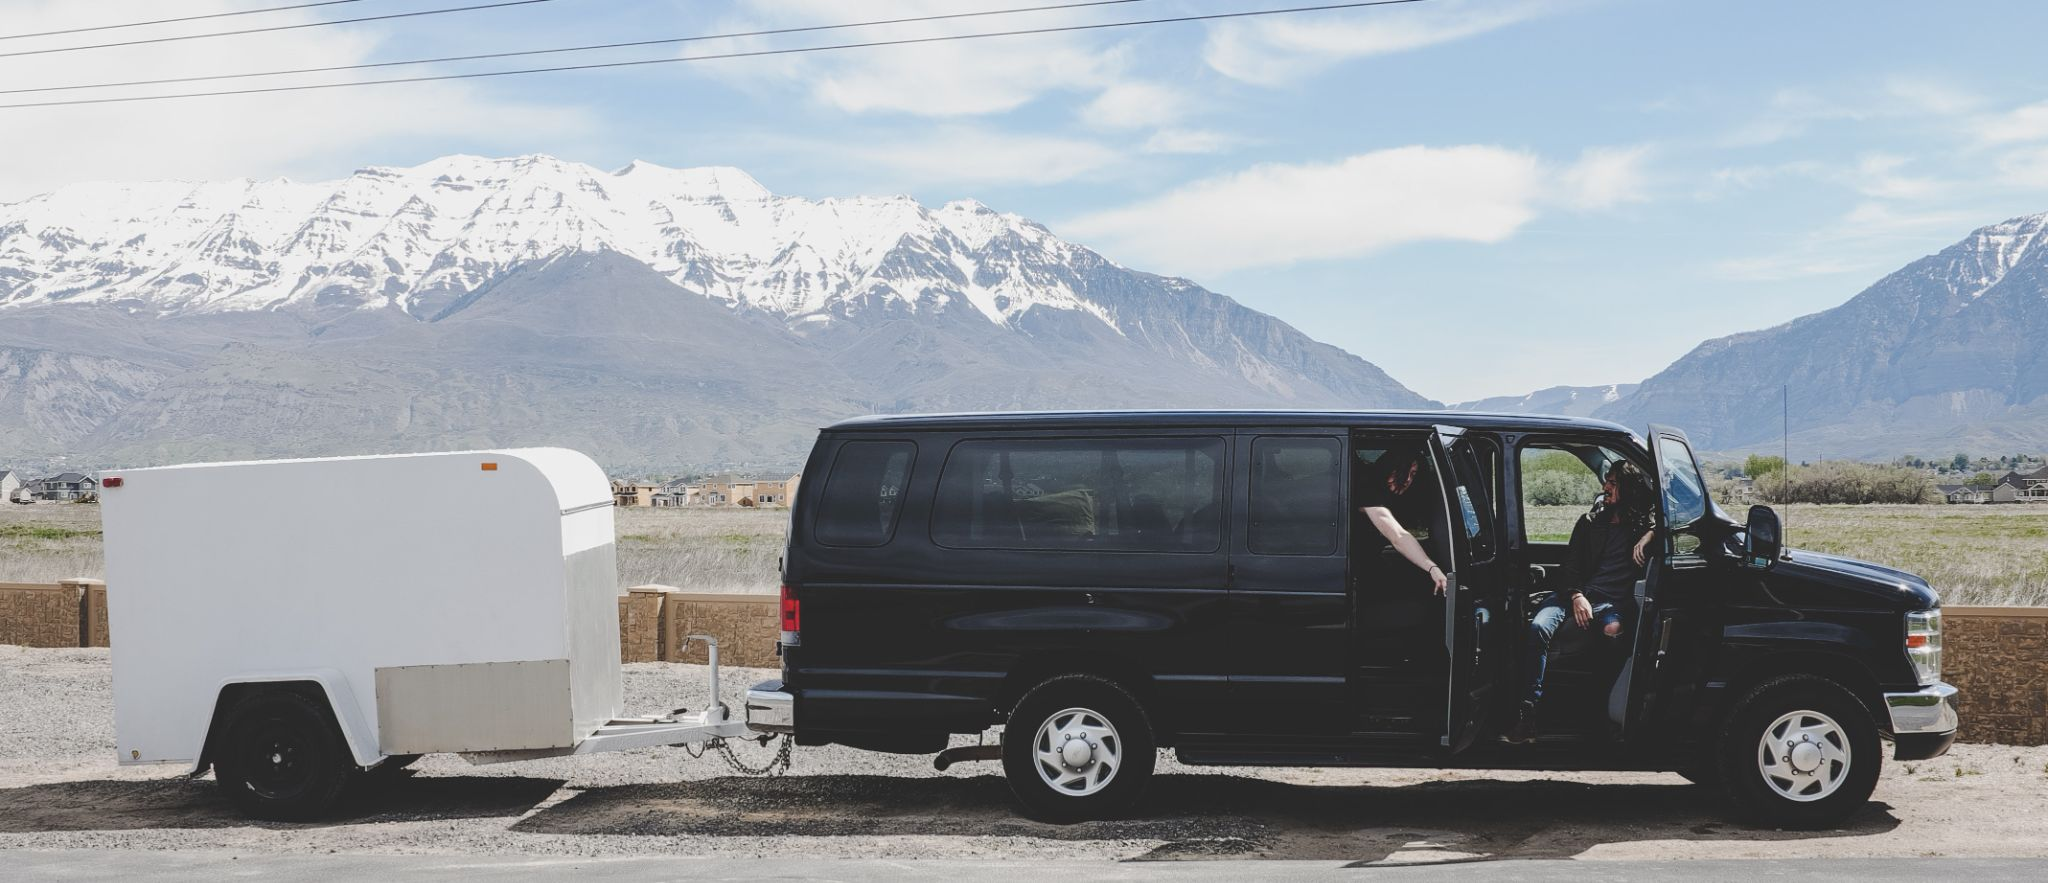 Large van with open doors with a small white trailer attached in front of some mountains